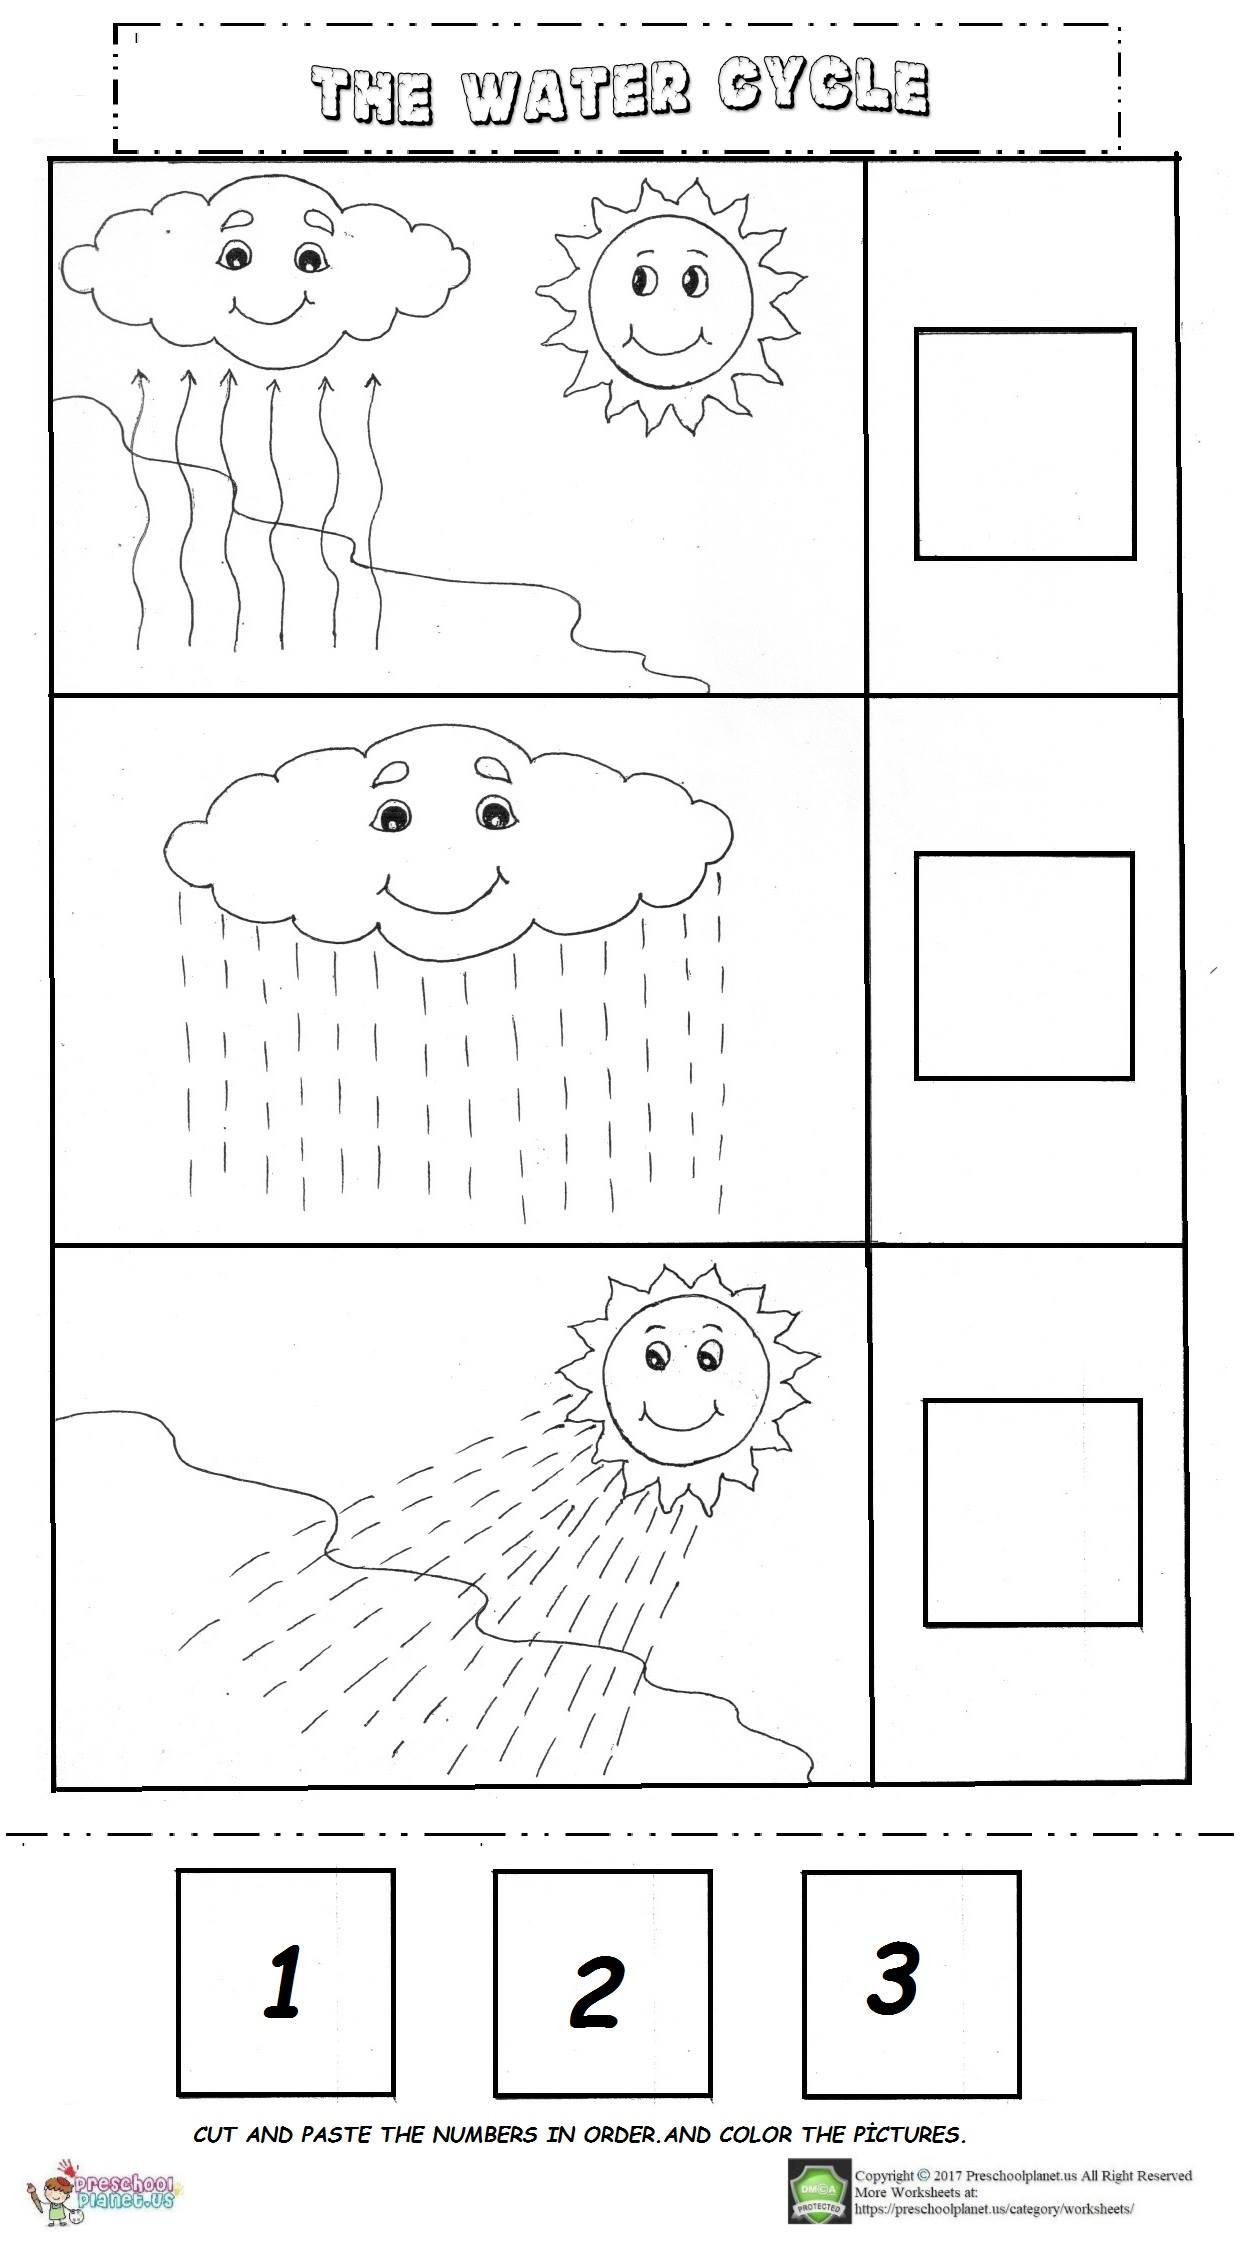 Free Printable Water Cycle Worksheet Worksheet For